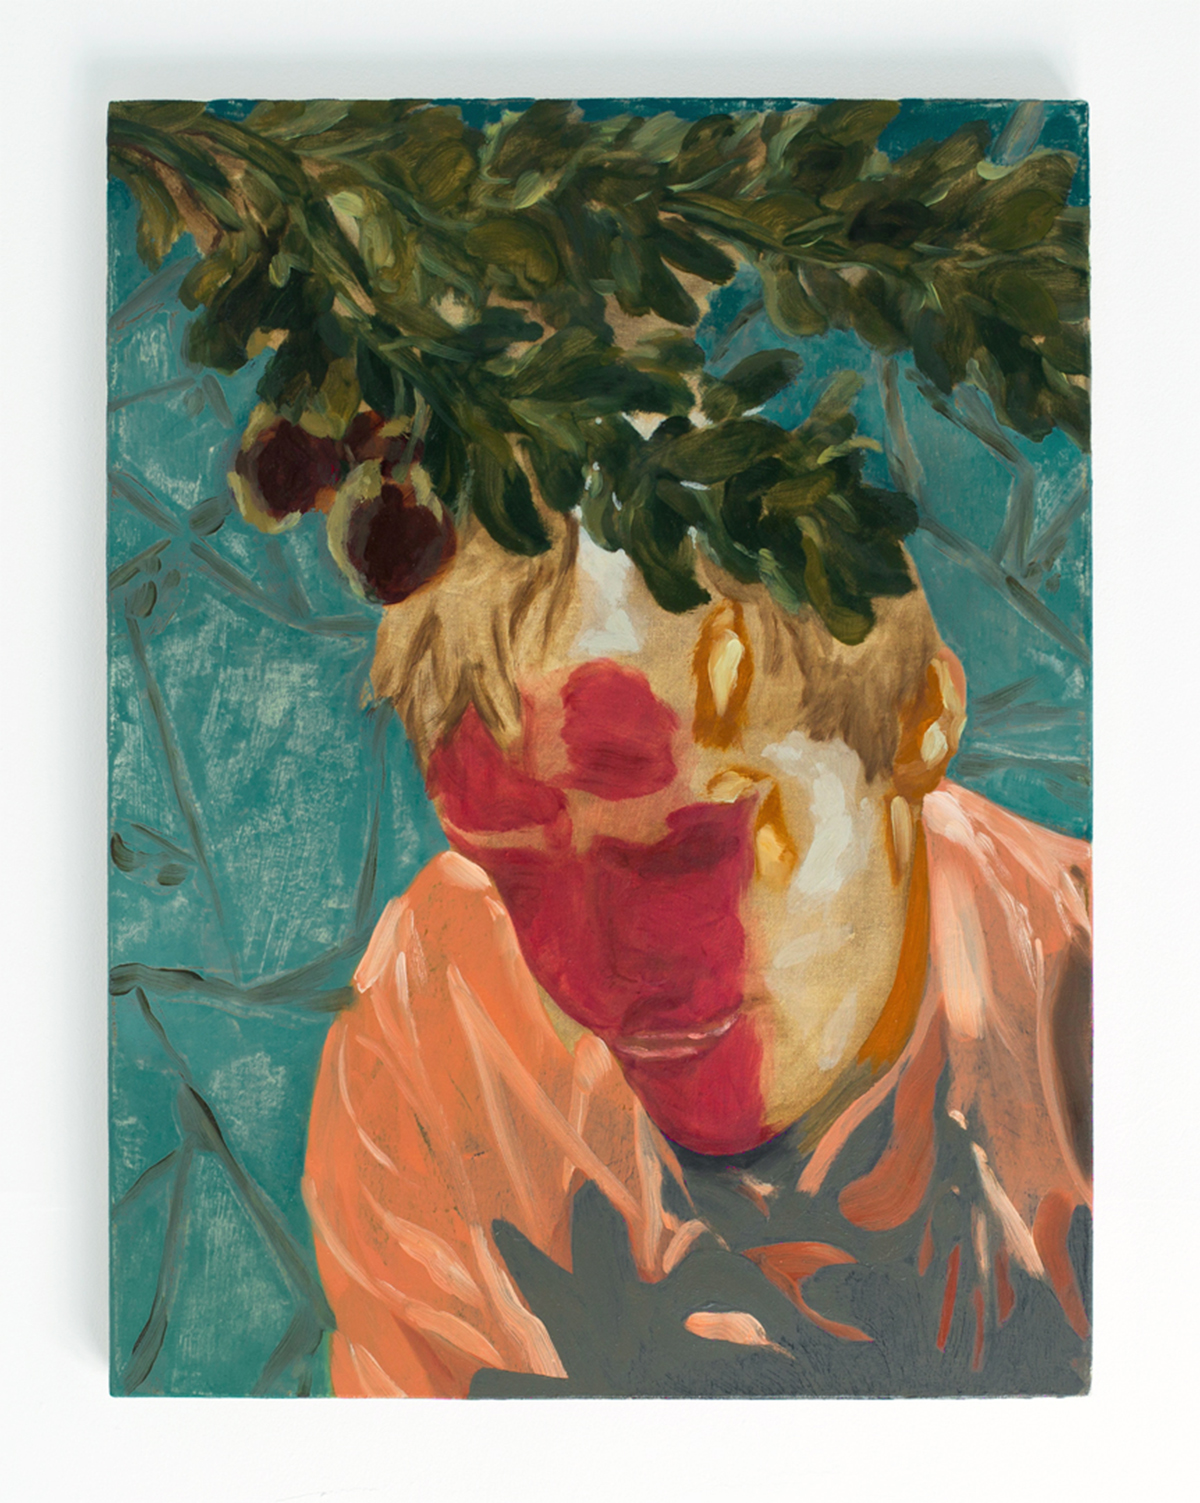 Laughing , 2015 Oil on canvas, 60 x 45.5 cm